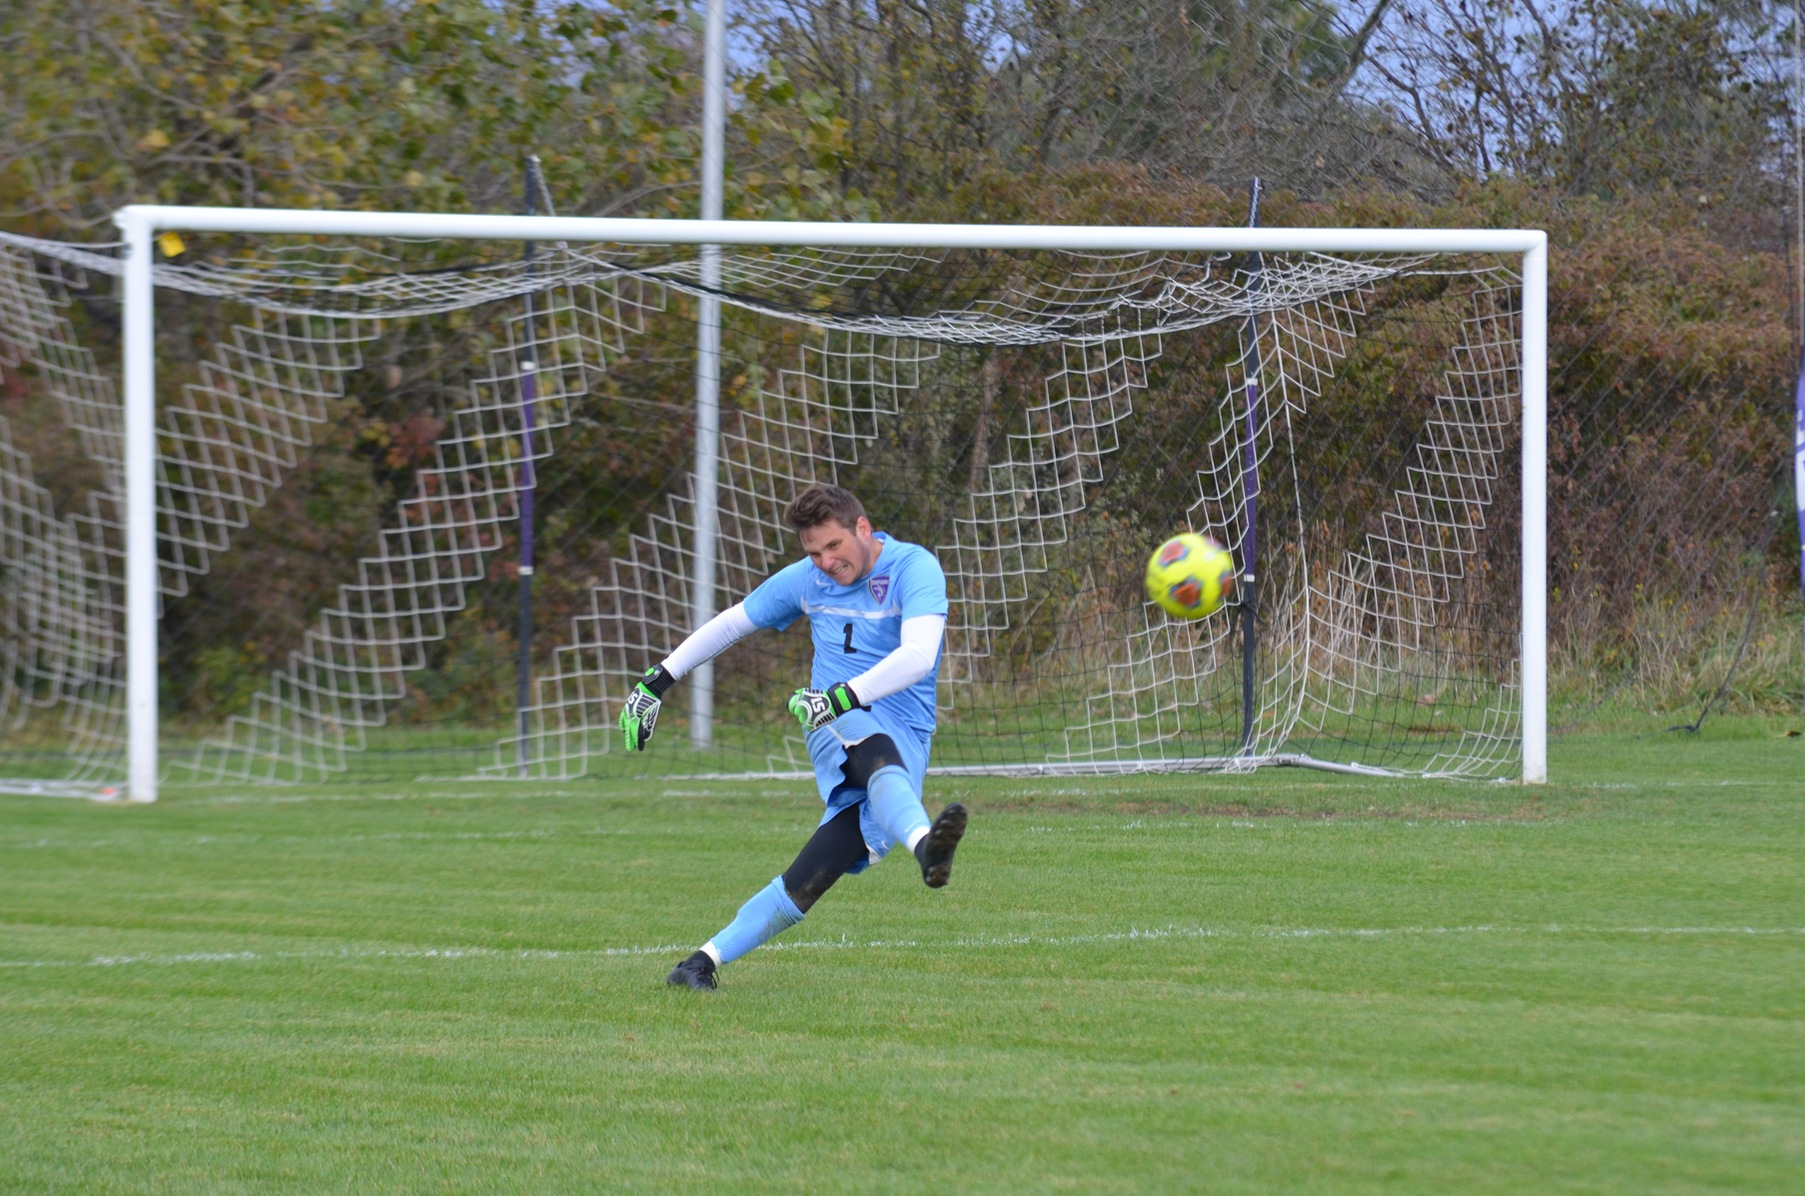 Scoreless Draw See Men's Soccer Split Points with Anderson